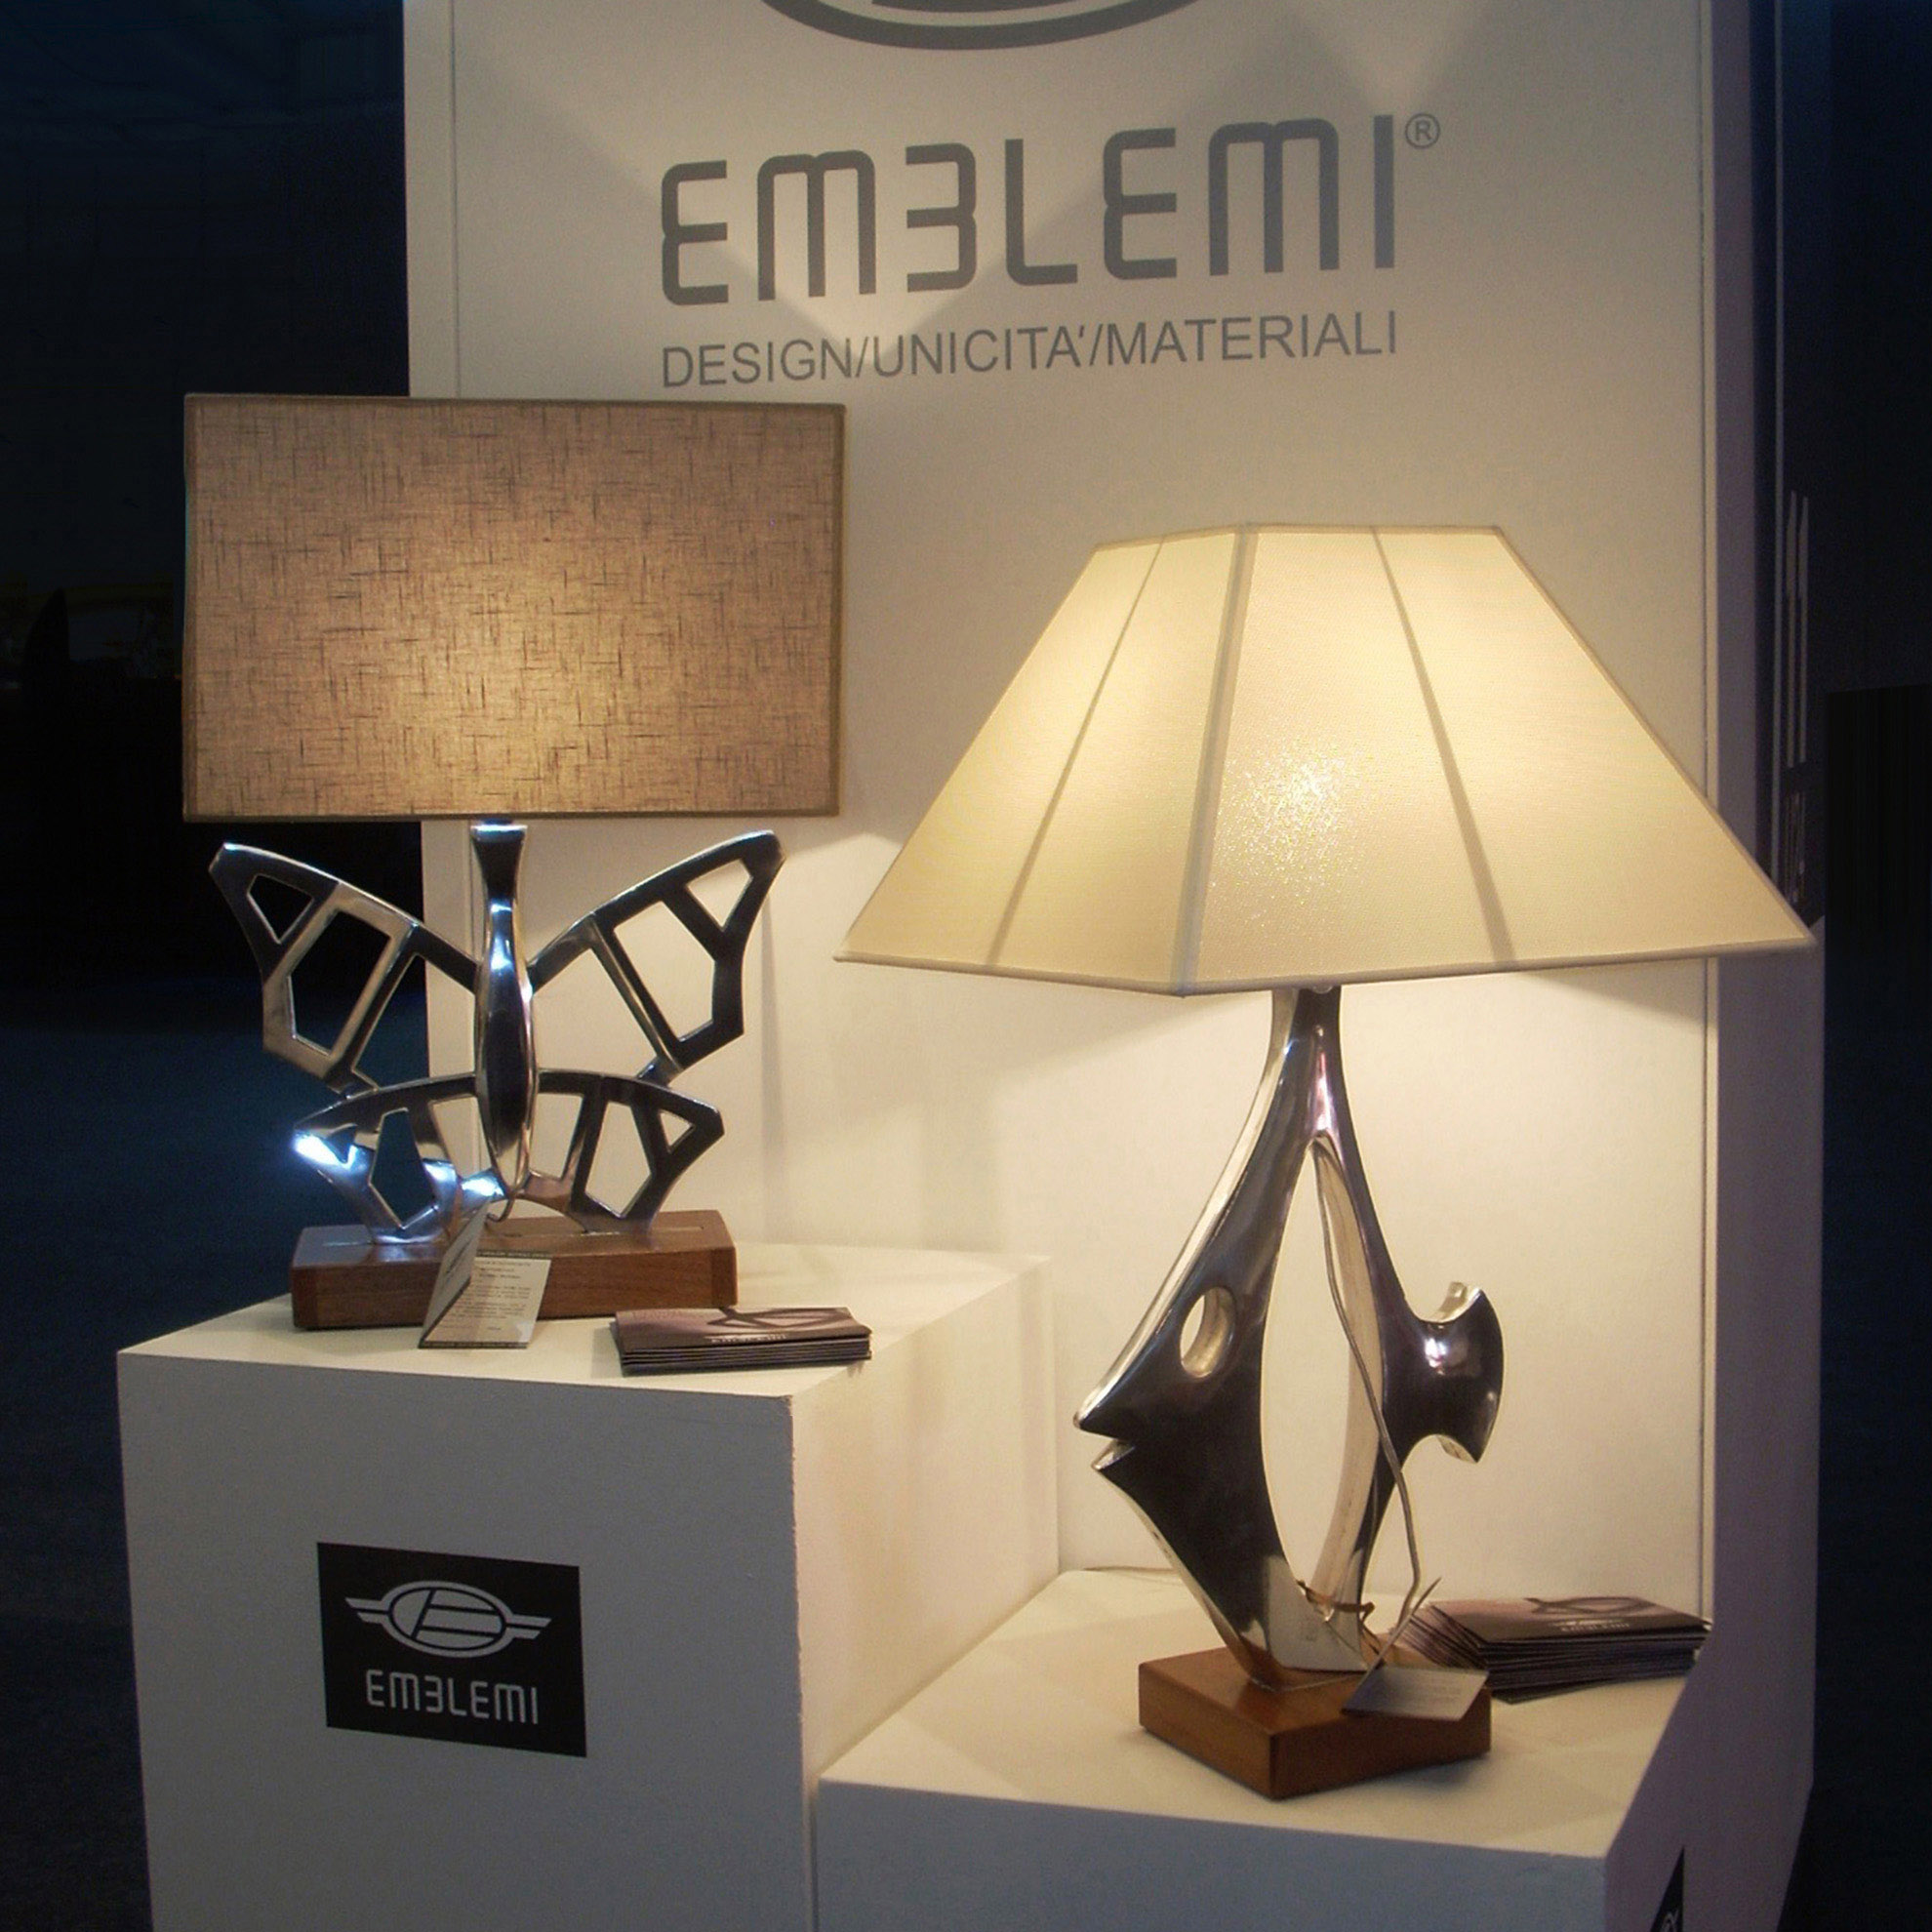 Butterflight and Nemo lamps